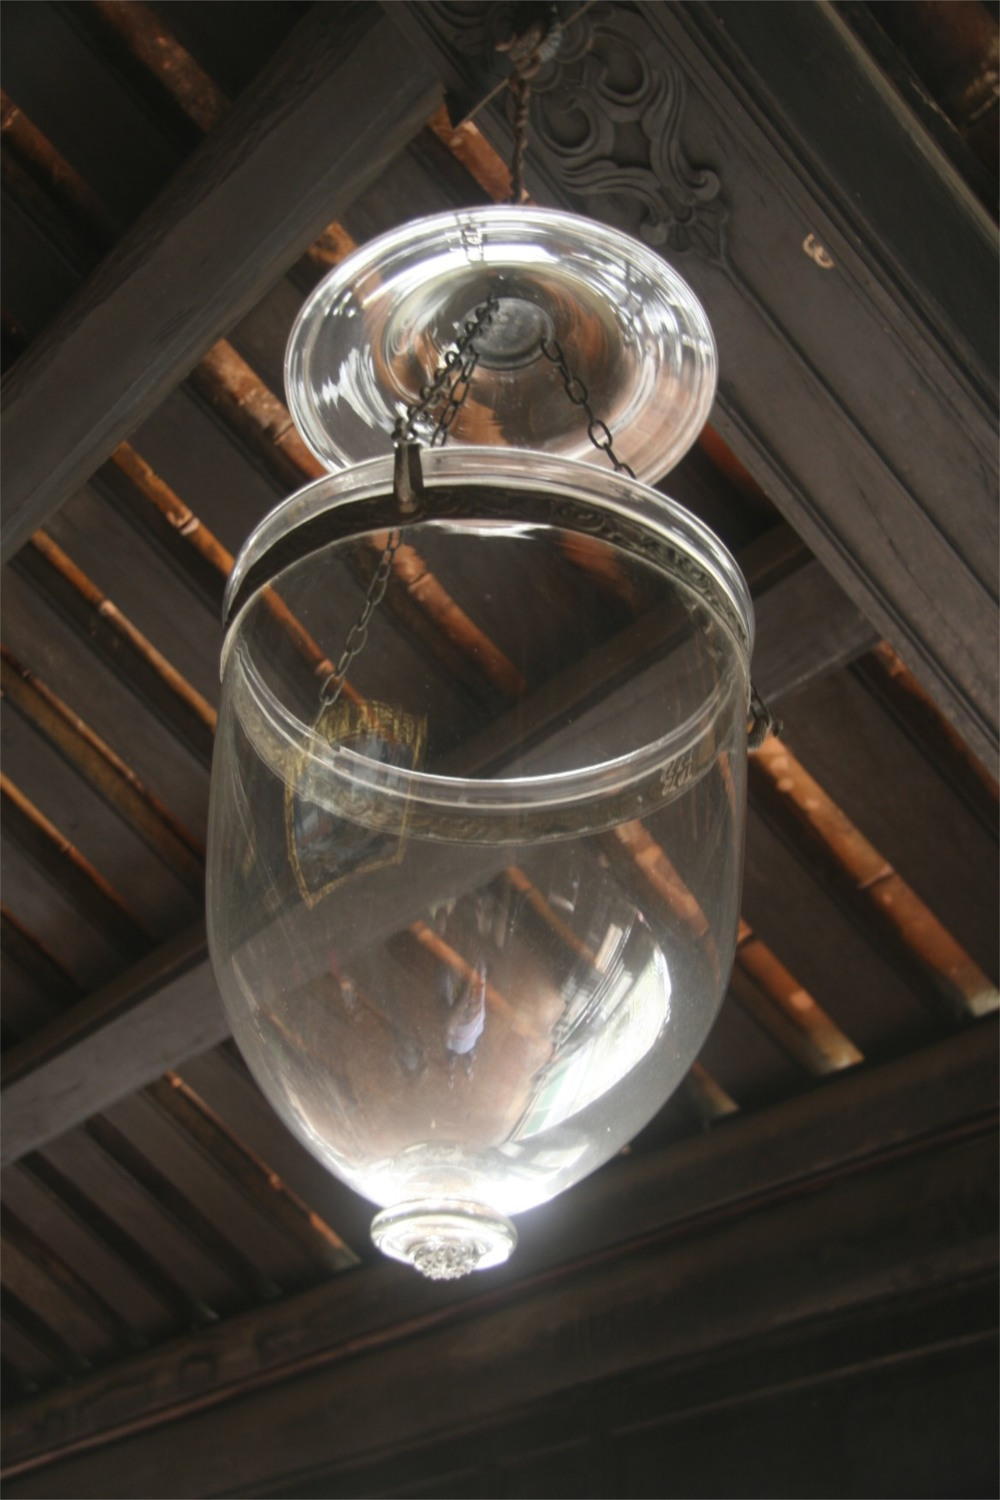 Cool glass lantern at the tombs in Hue.